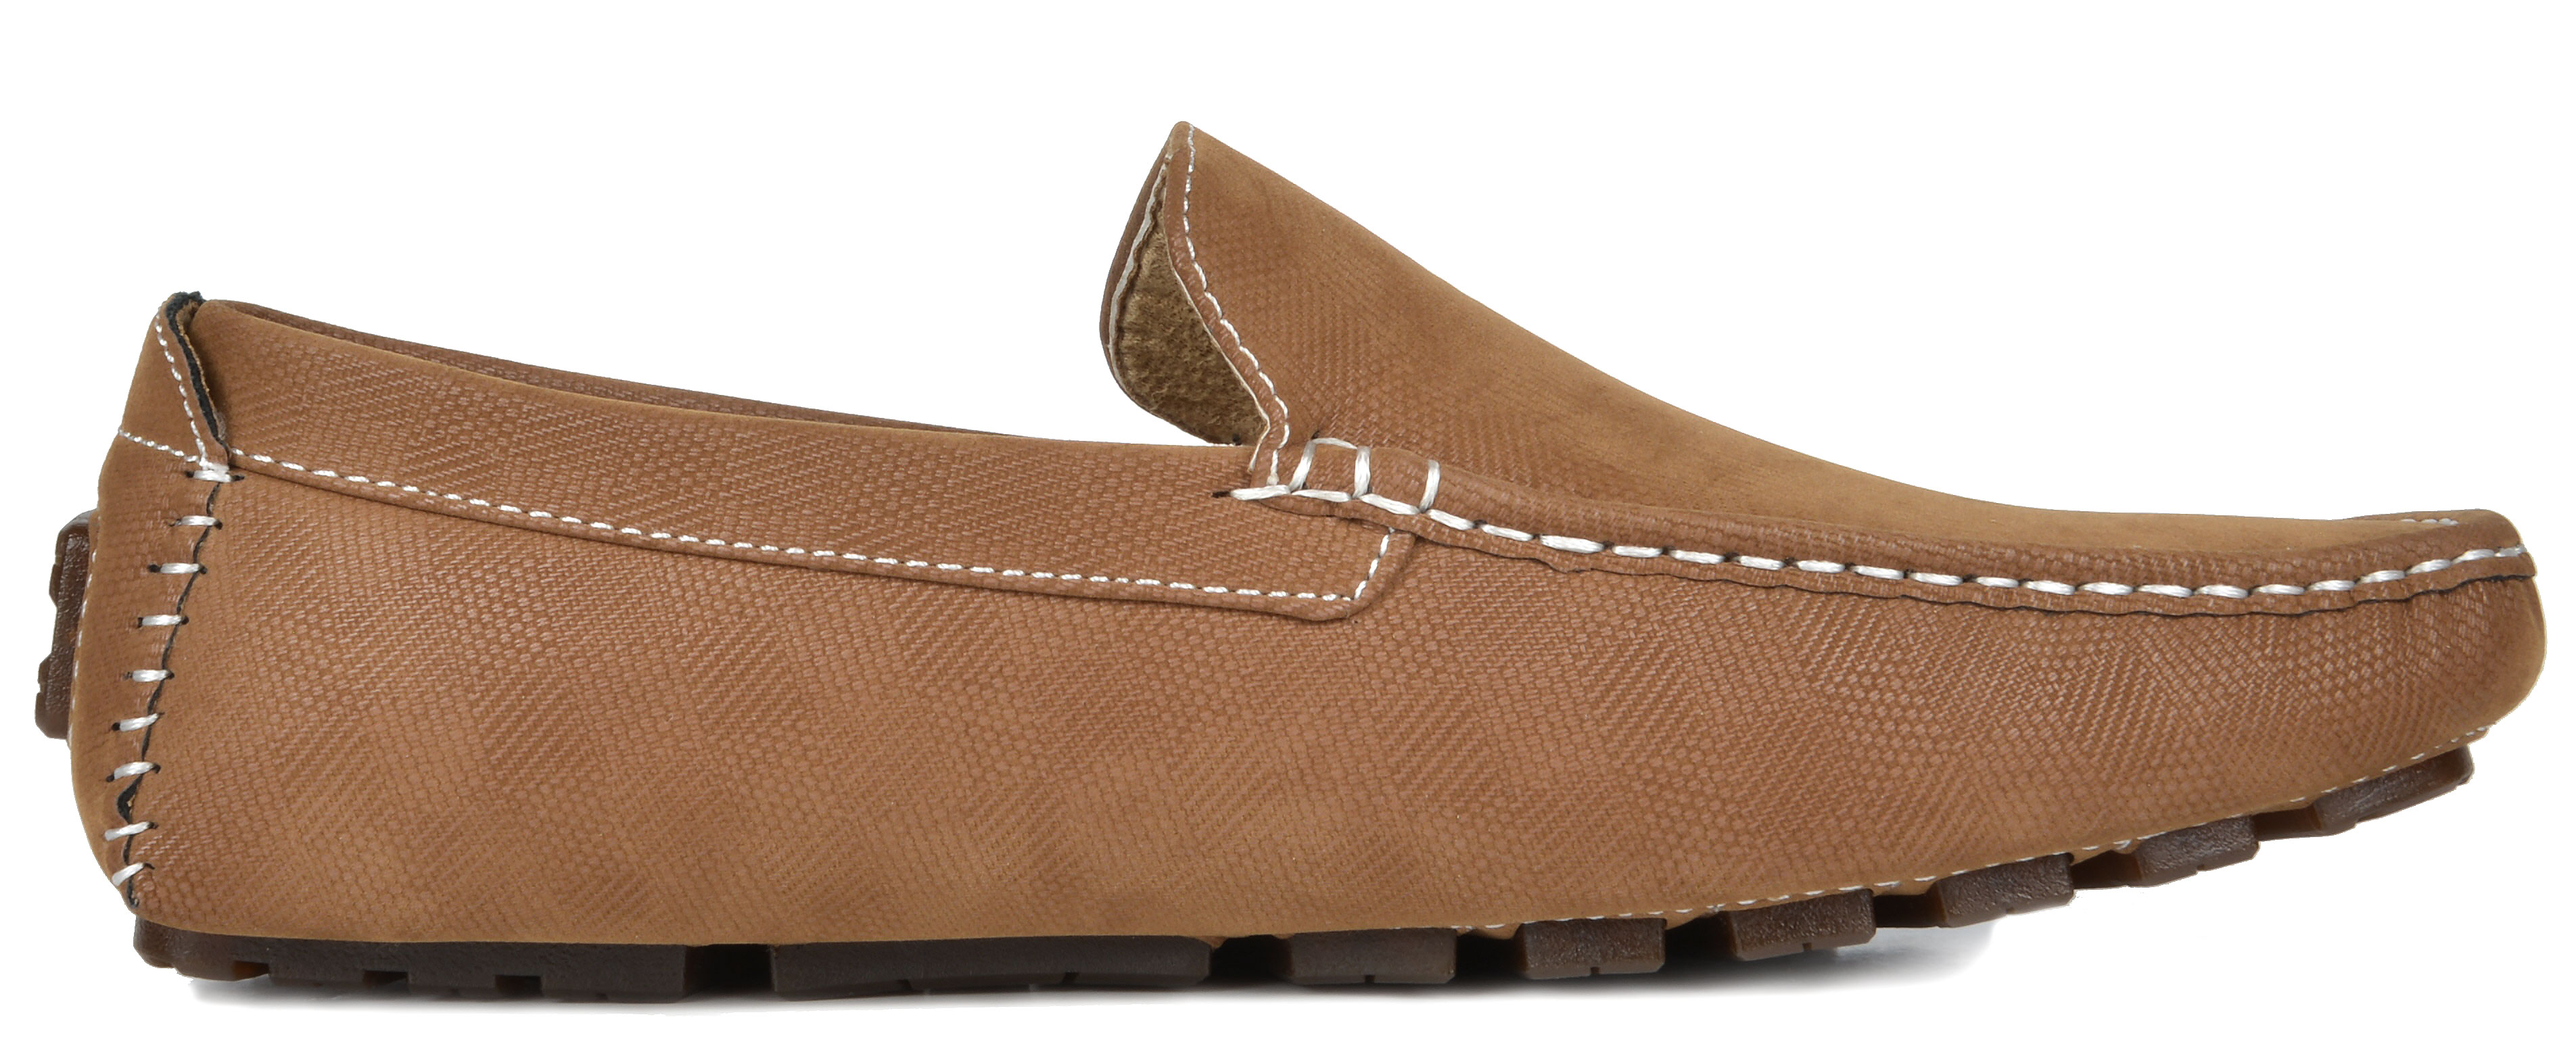 Bruno-Marc-Men-039-s-New-Classic-Fashion-Slip-on-Driving-Casual-Loafers-Boat-Shoes thumbnail 122